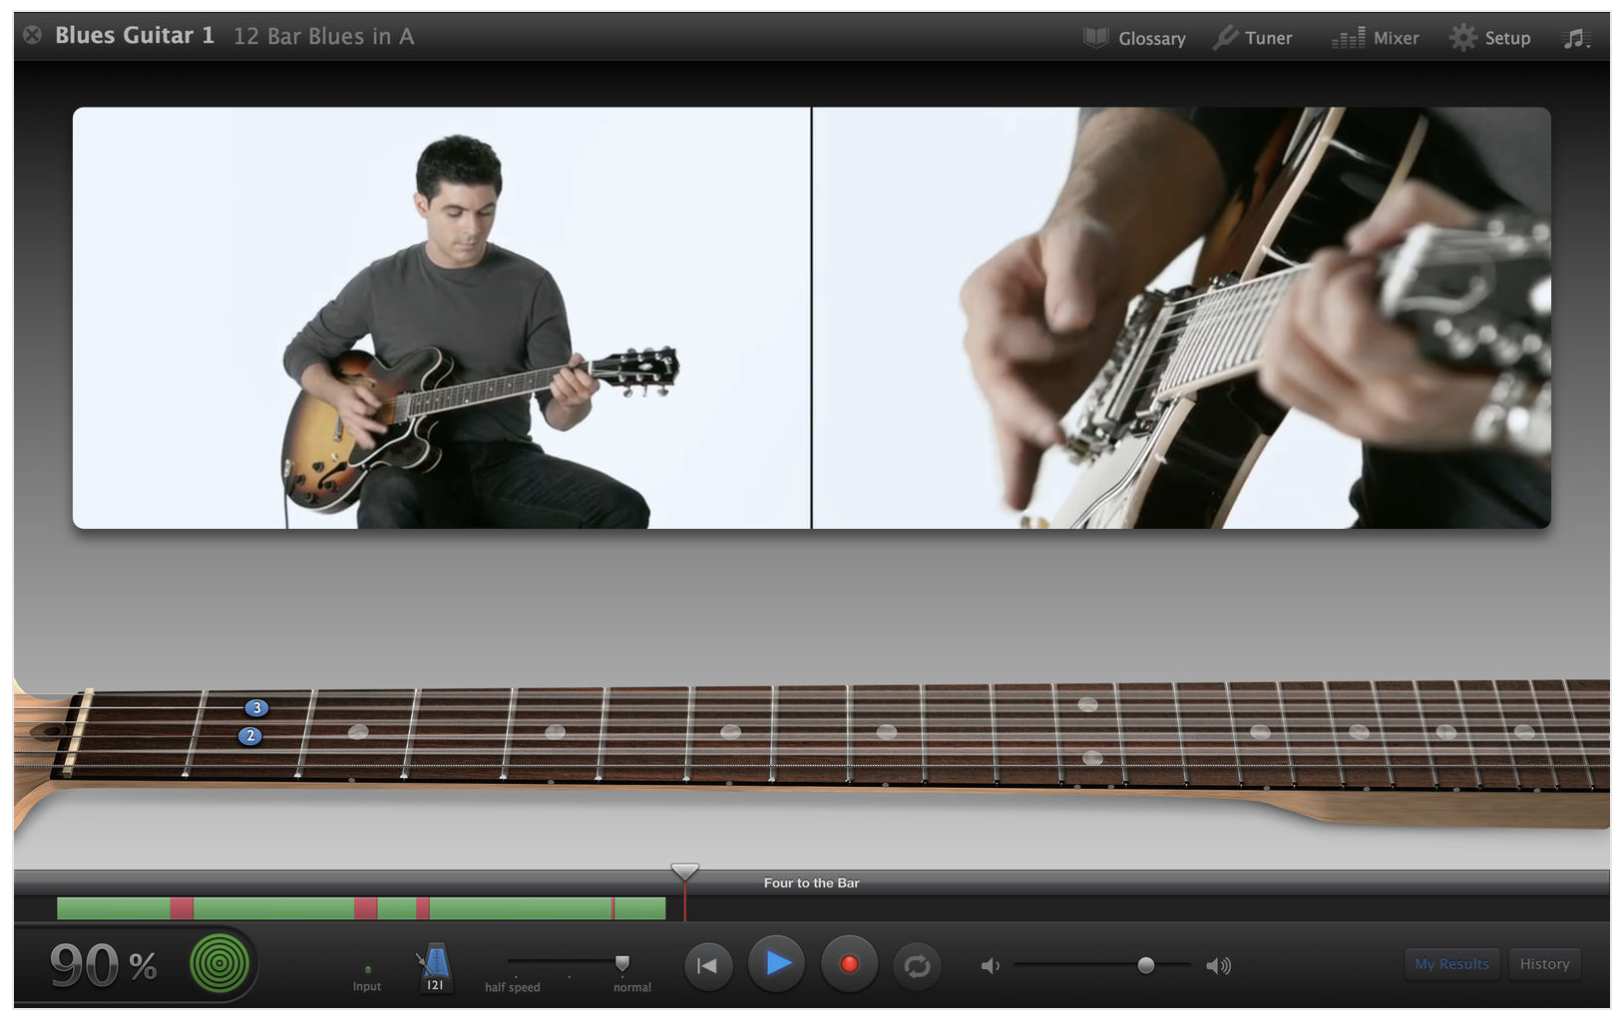 Apple updates GarageBand for Mac with new loops, sound effects, and